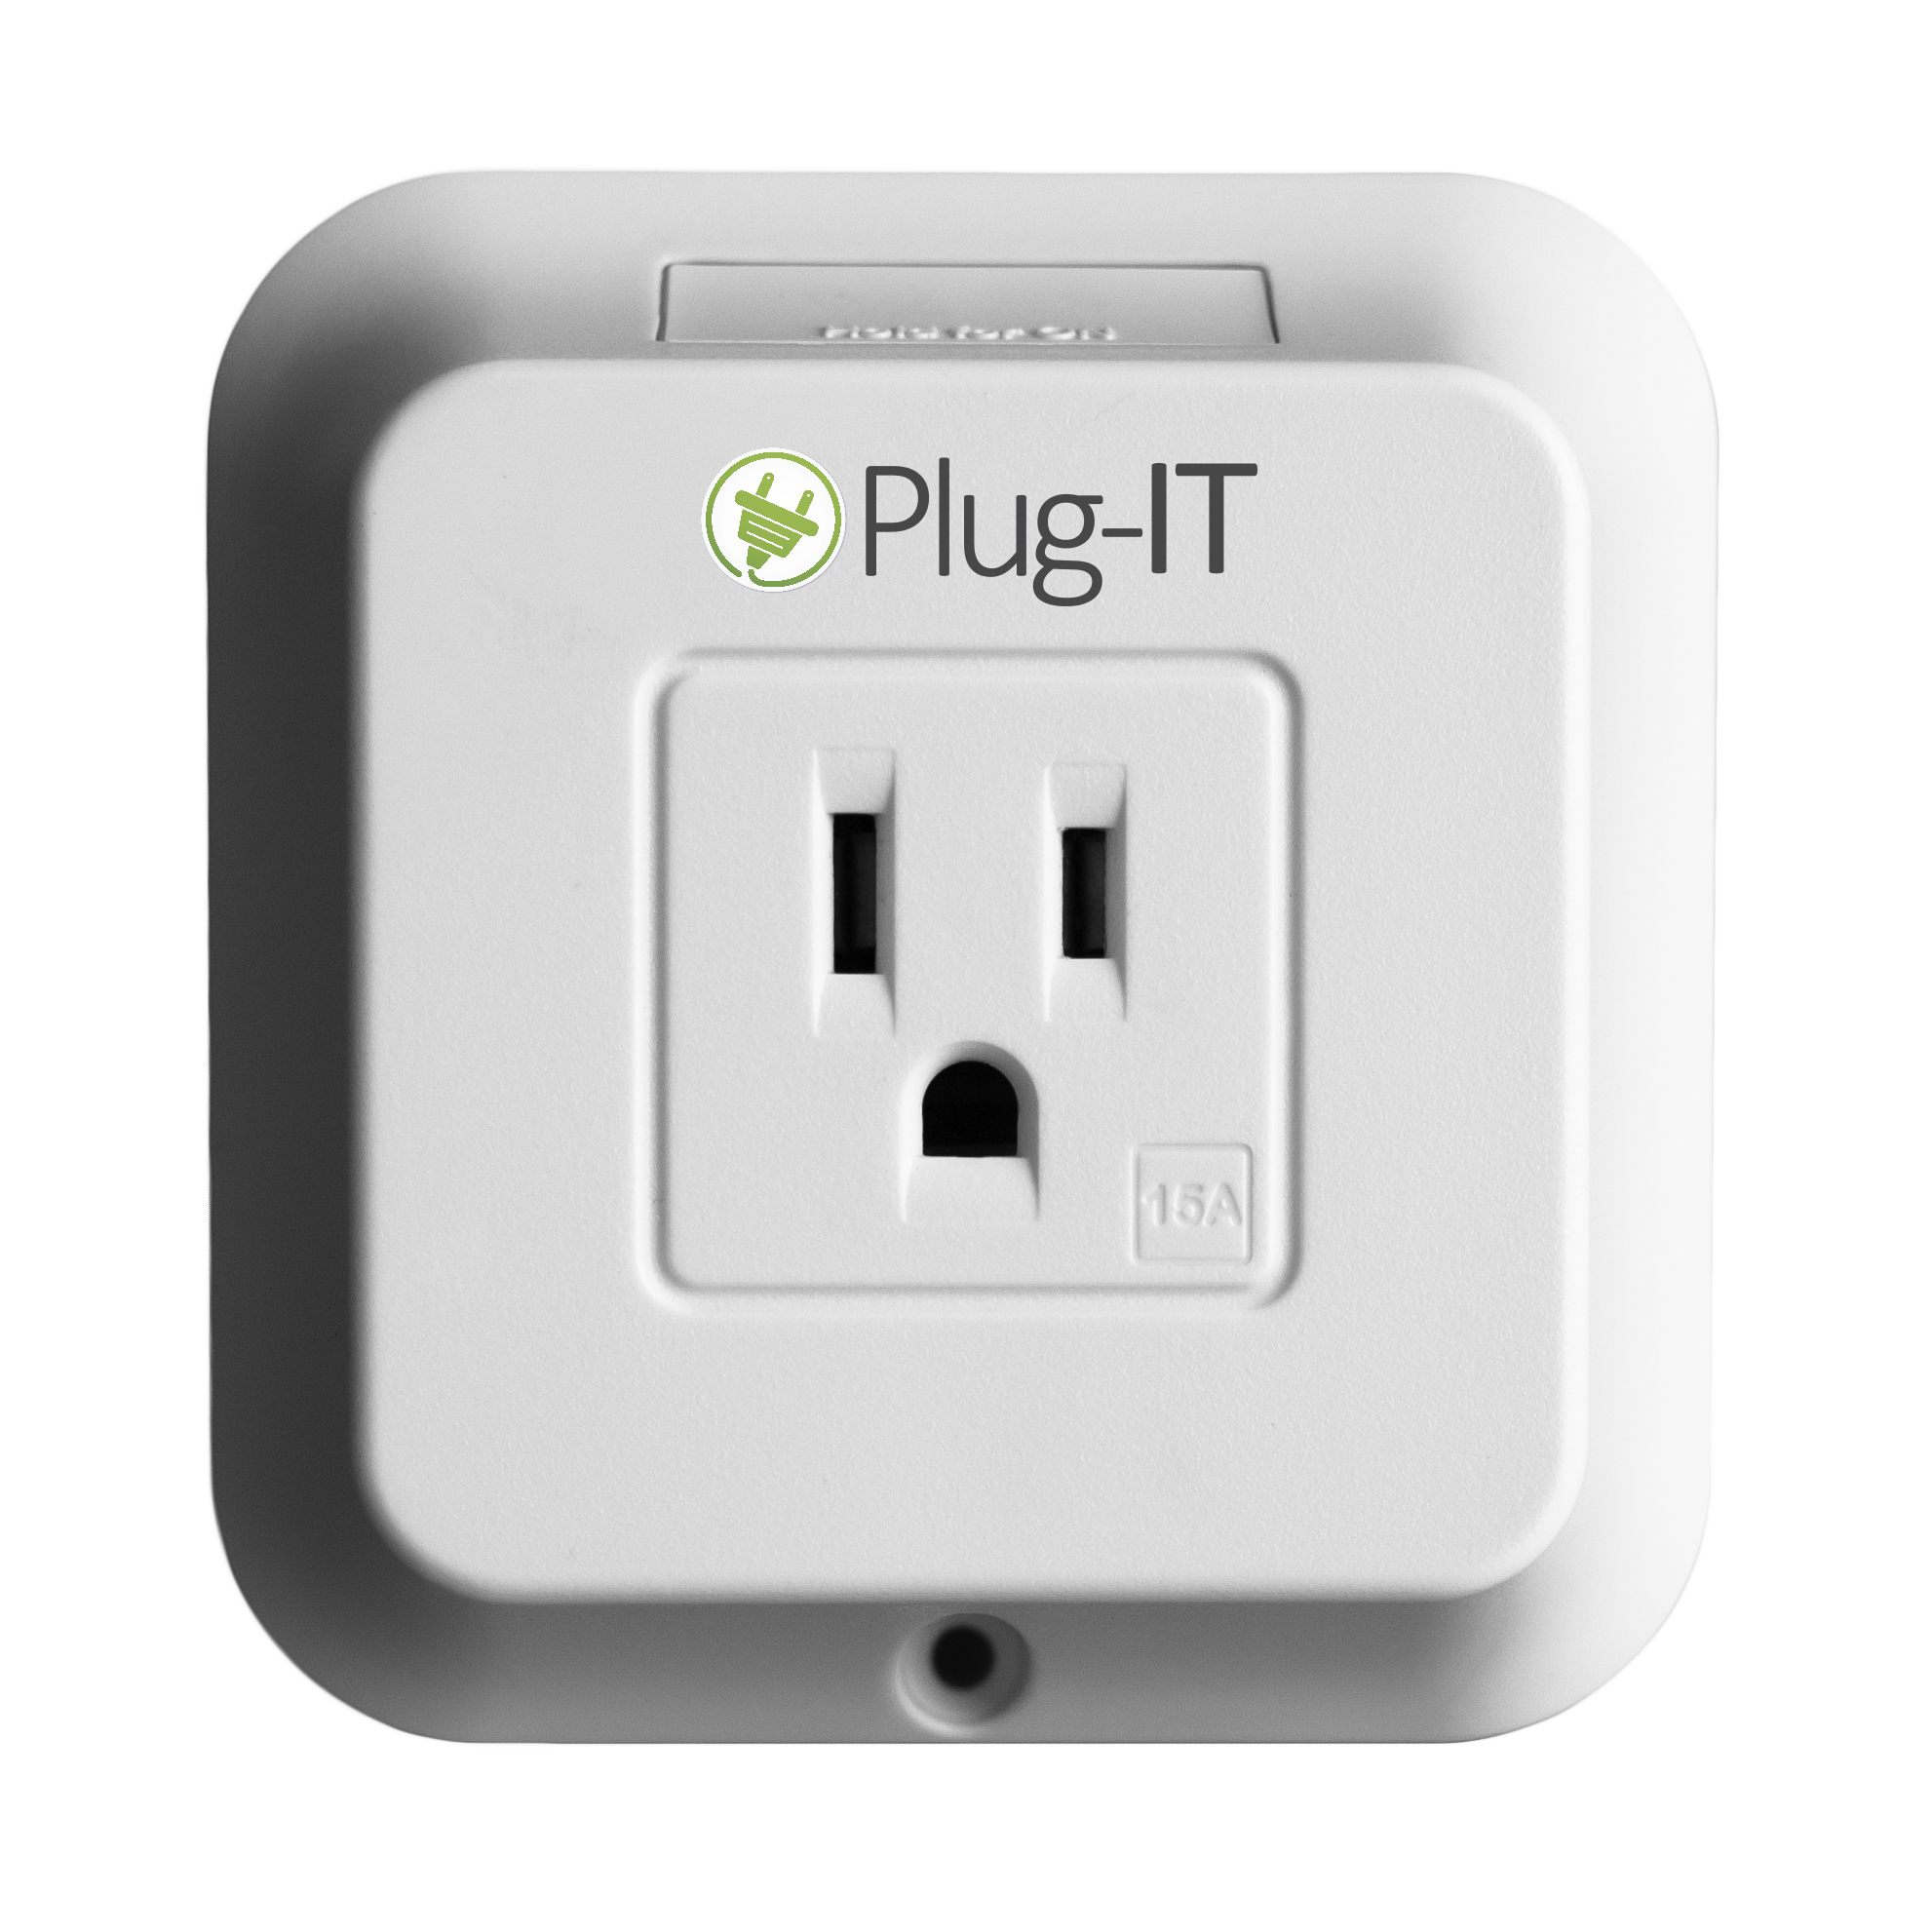 110 - Wireless Smart Plug Load Device 110/15 Non-measurment